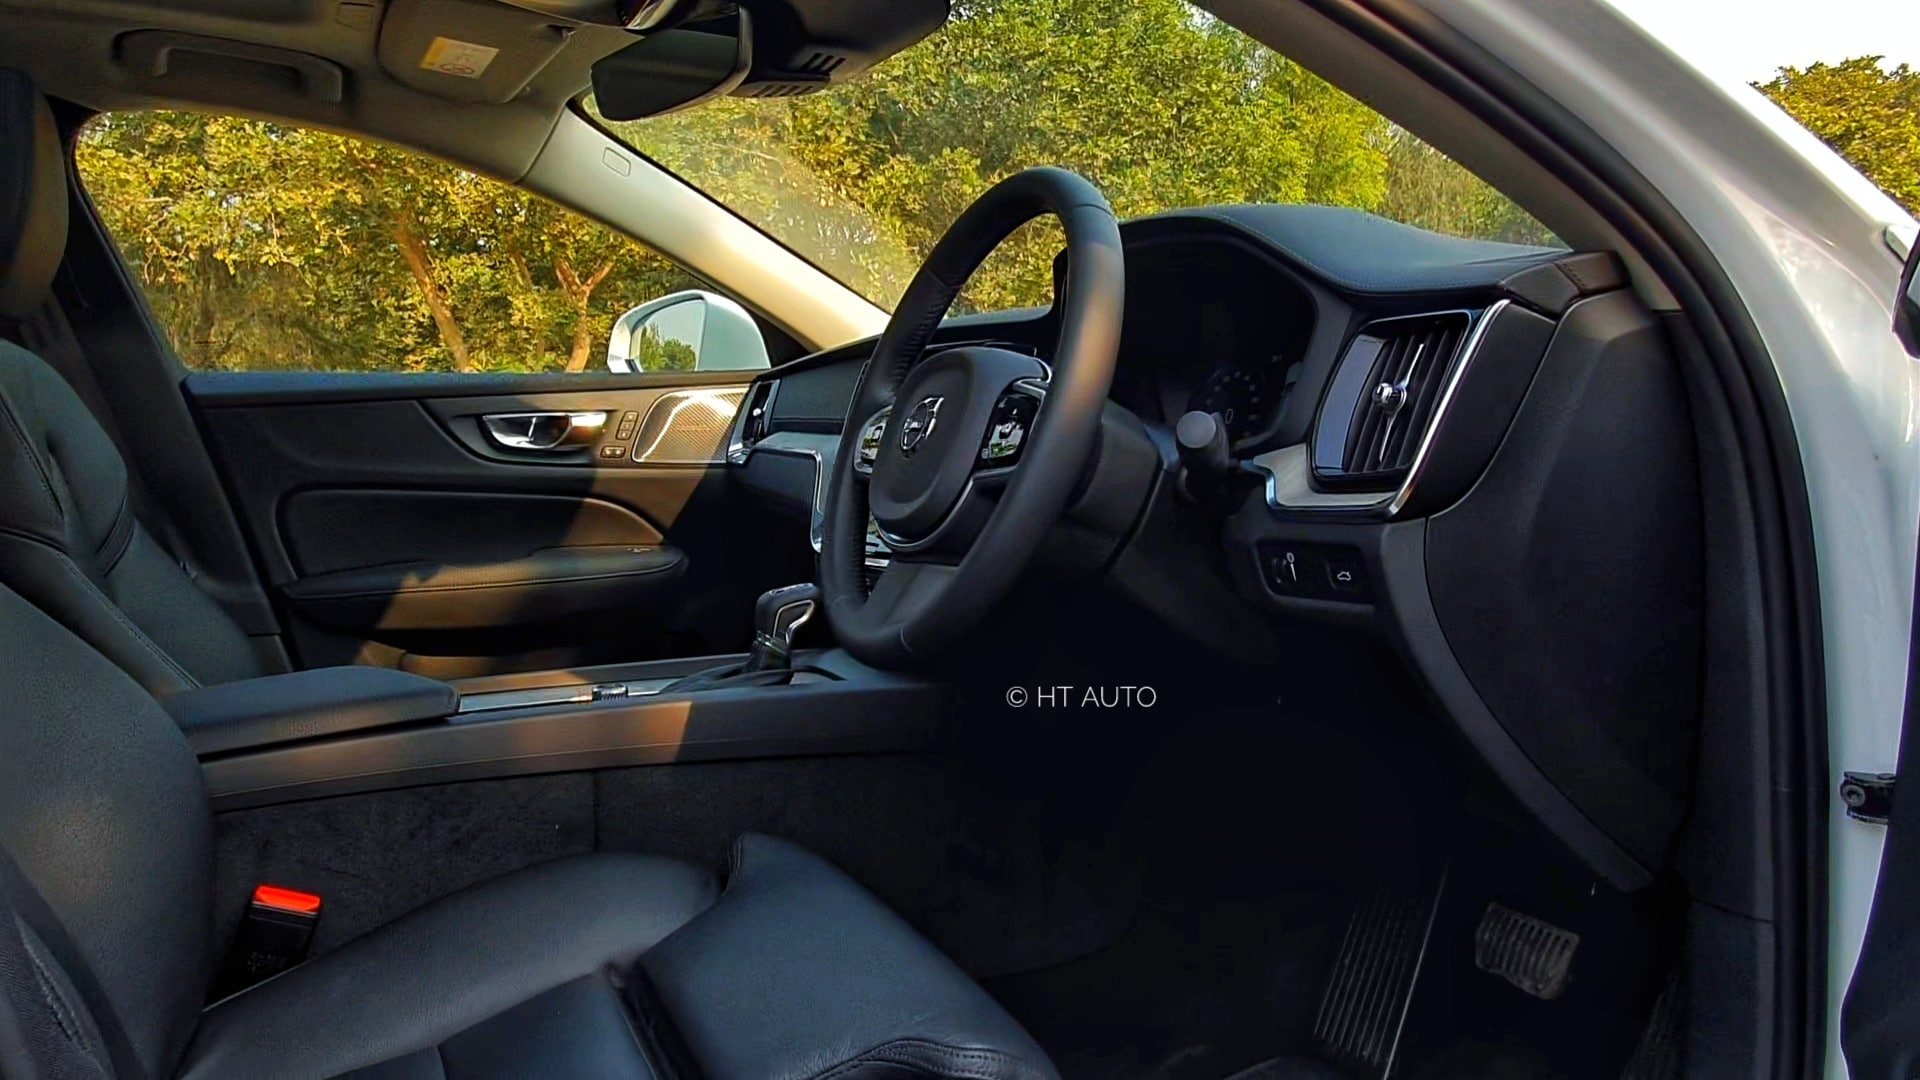 The steering wheel can be adjusted for reach and rake and while the front seats are comfortable, lack massage functionality. (HT Auto/Sabyasachi Dasgupta)